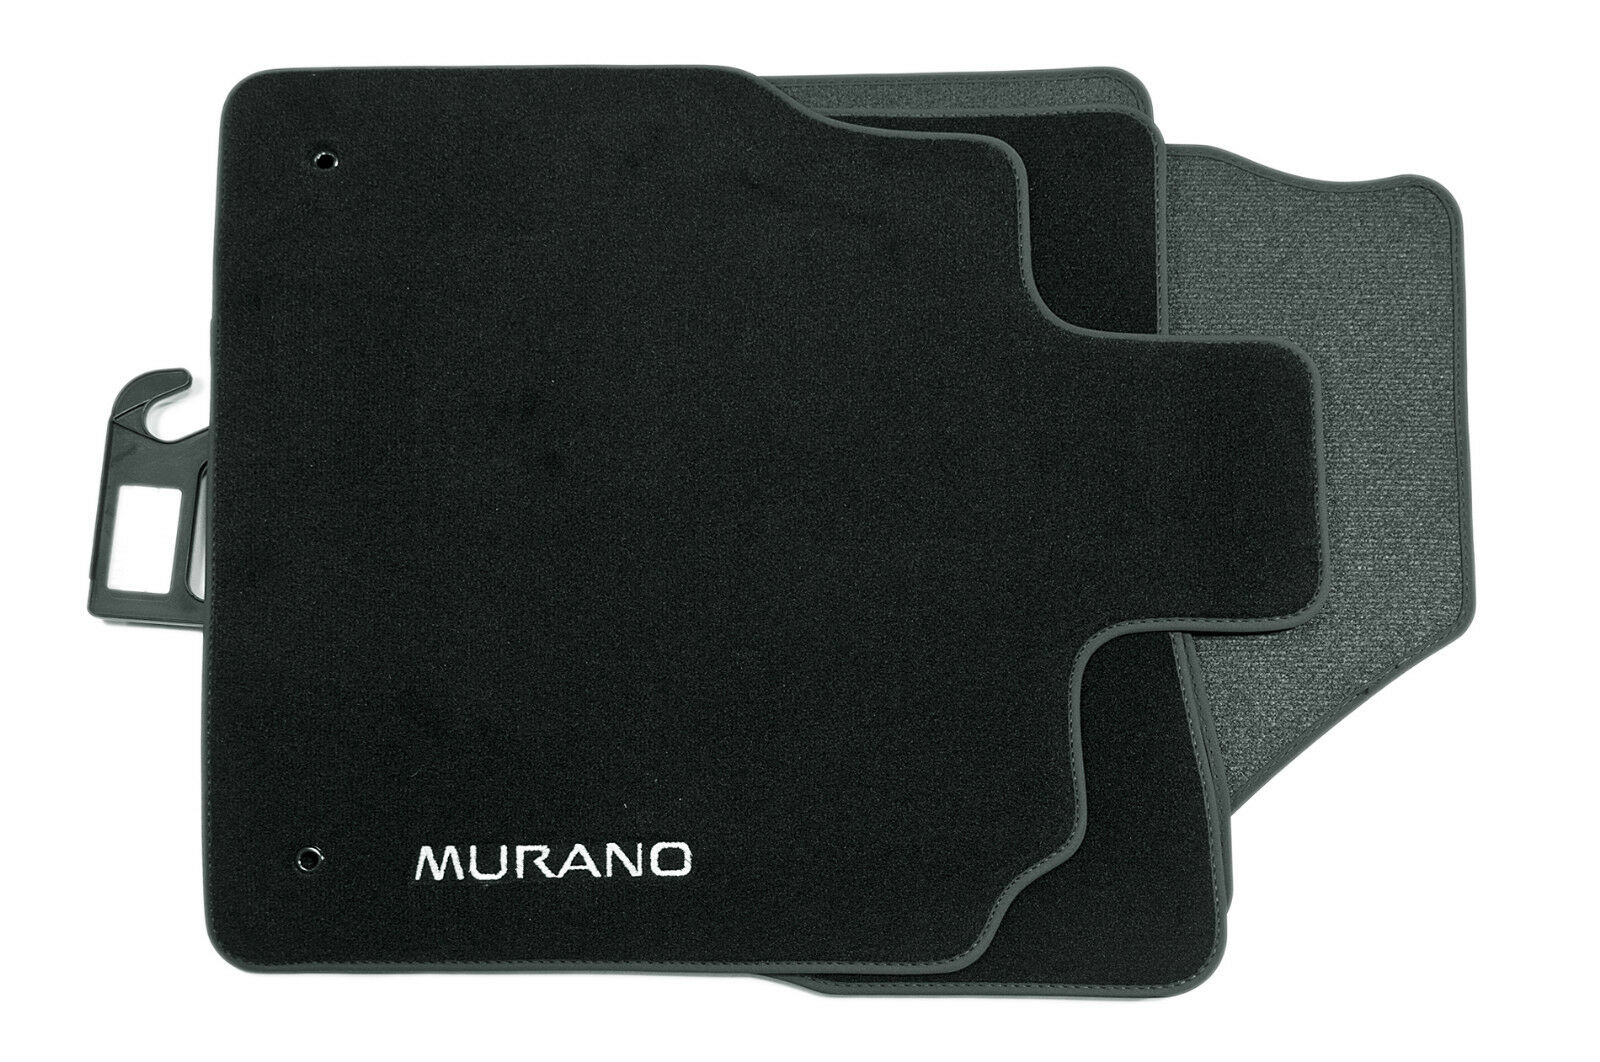 Nissan Murano Z51 Genuine Car Floor Mats Luxury Tailored Set X4 Black  KE7551A081 1 Of 1FREE Shipping ...